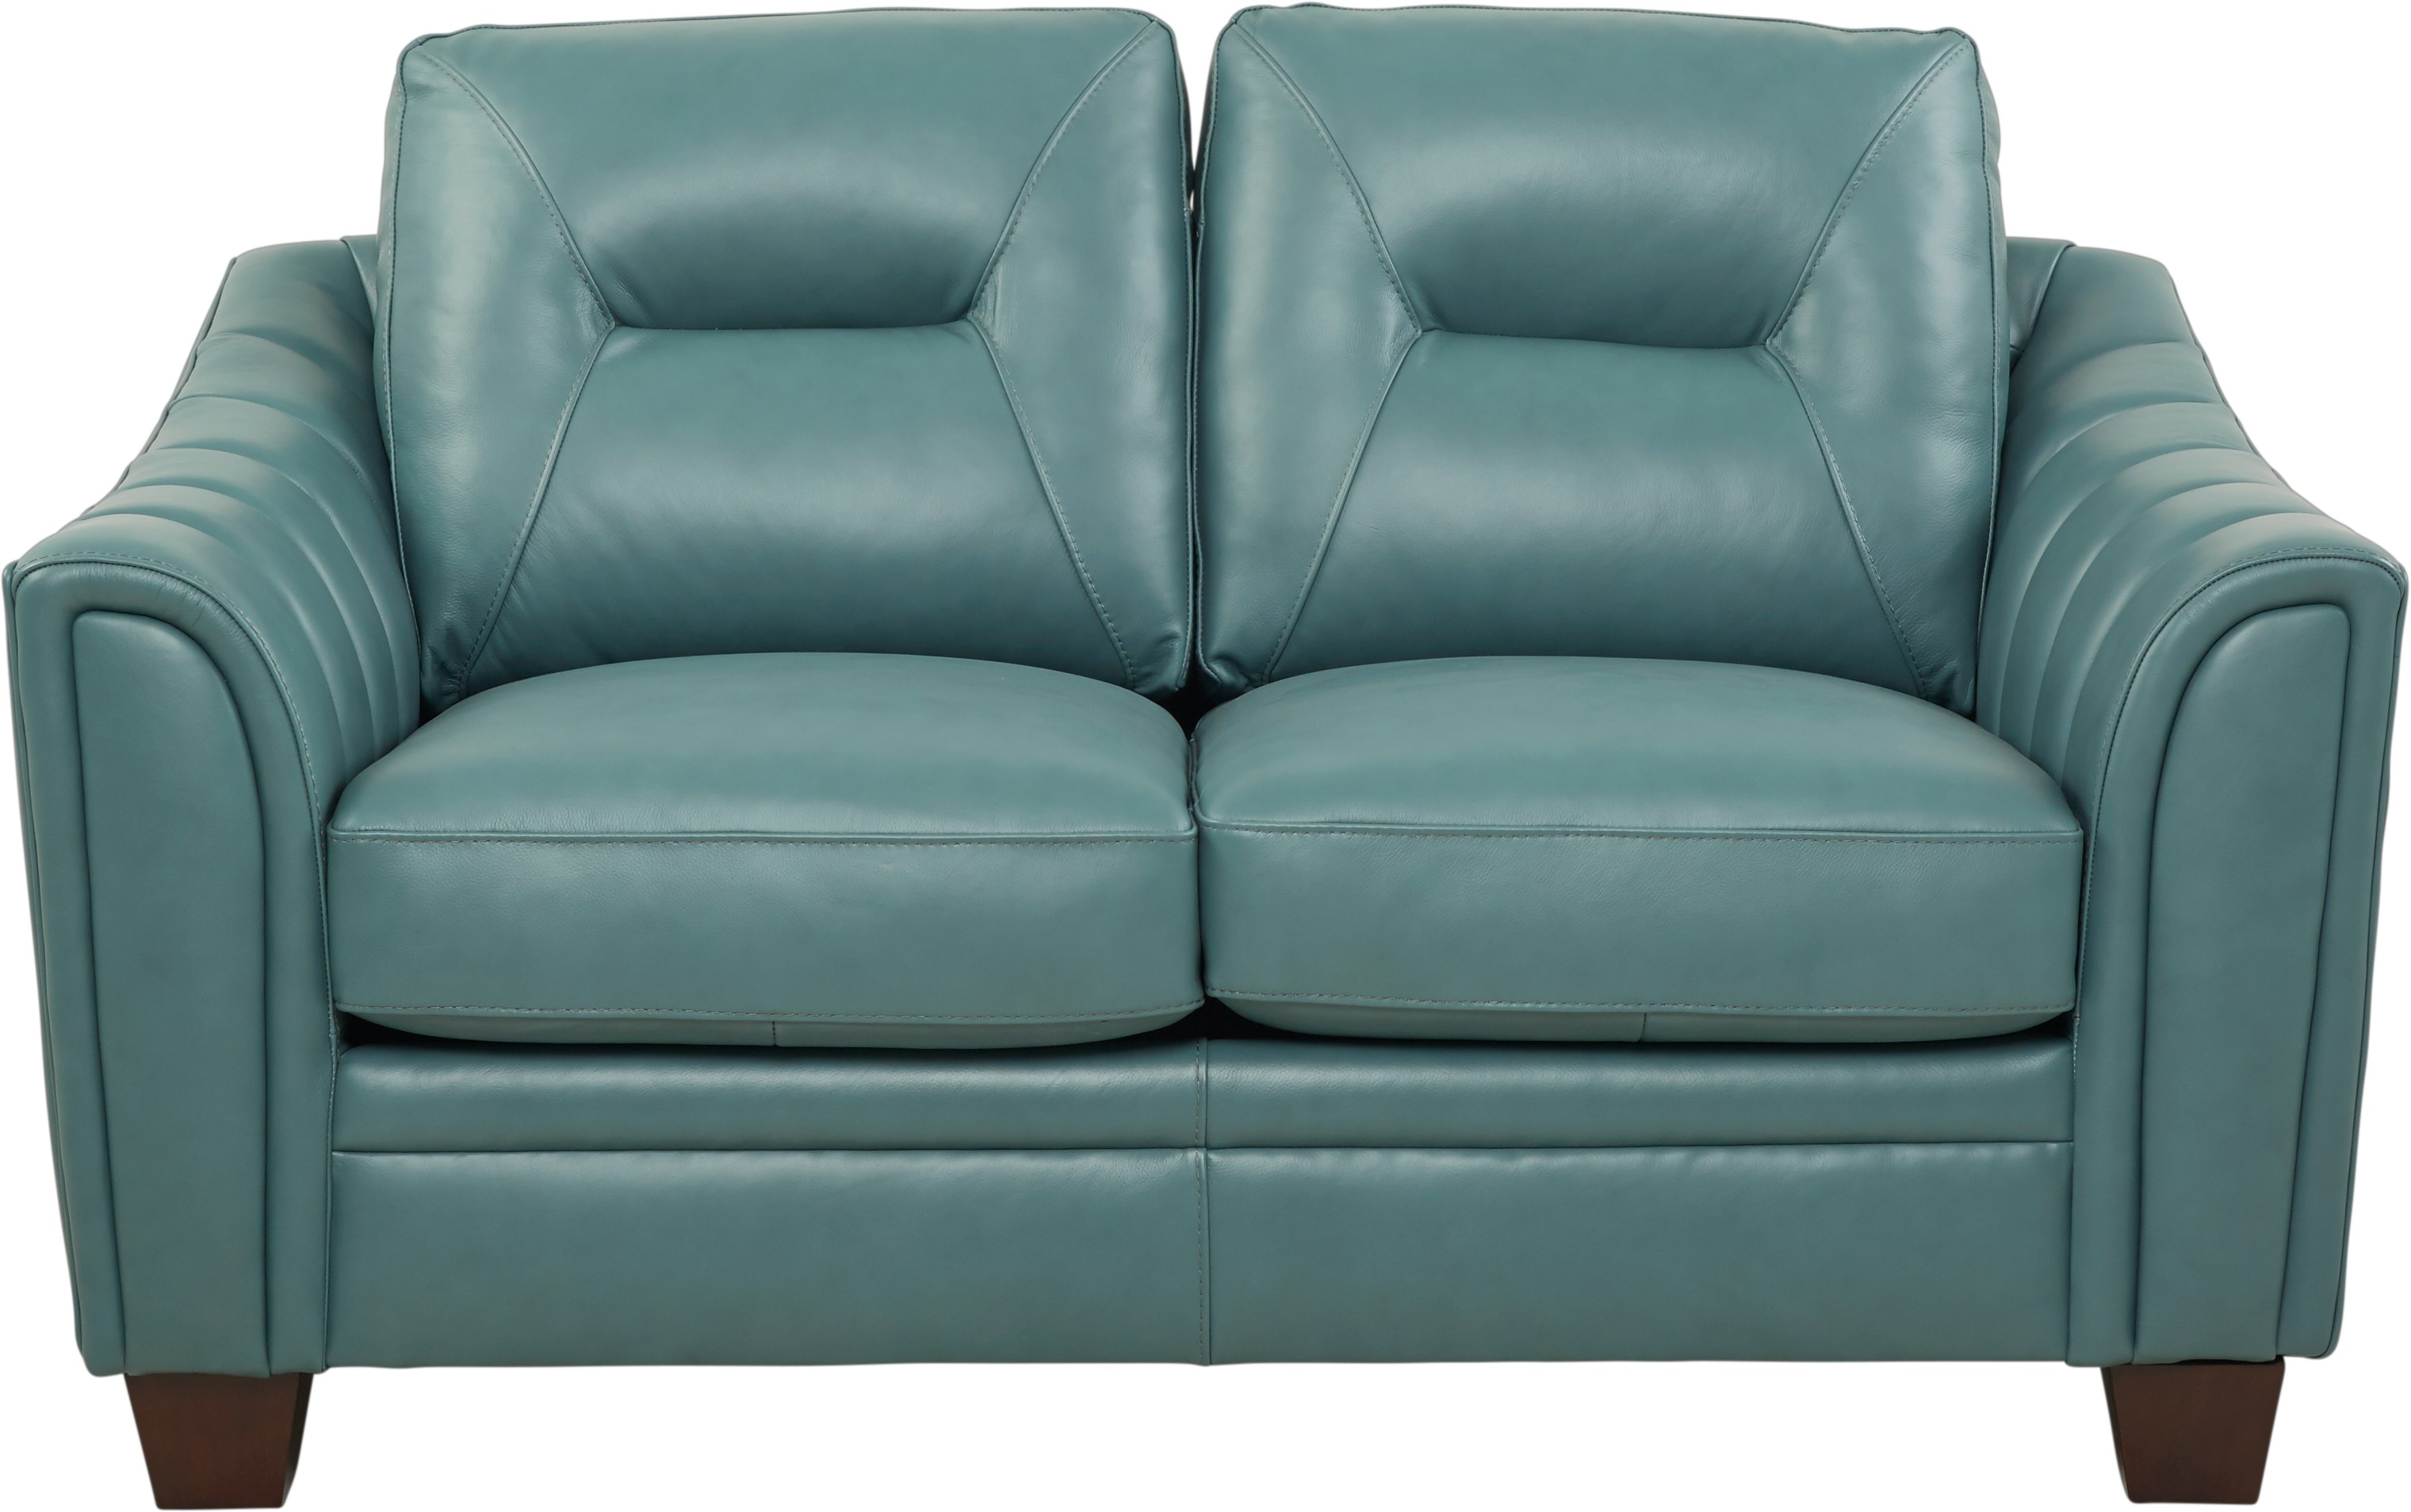 Cindy Crawford Home San Martino Teal Leather Loveseat - Leather Loveseats  (Blue)